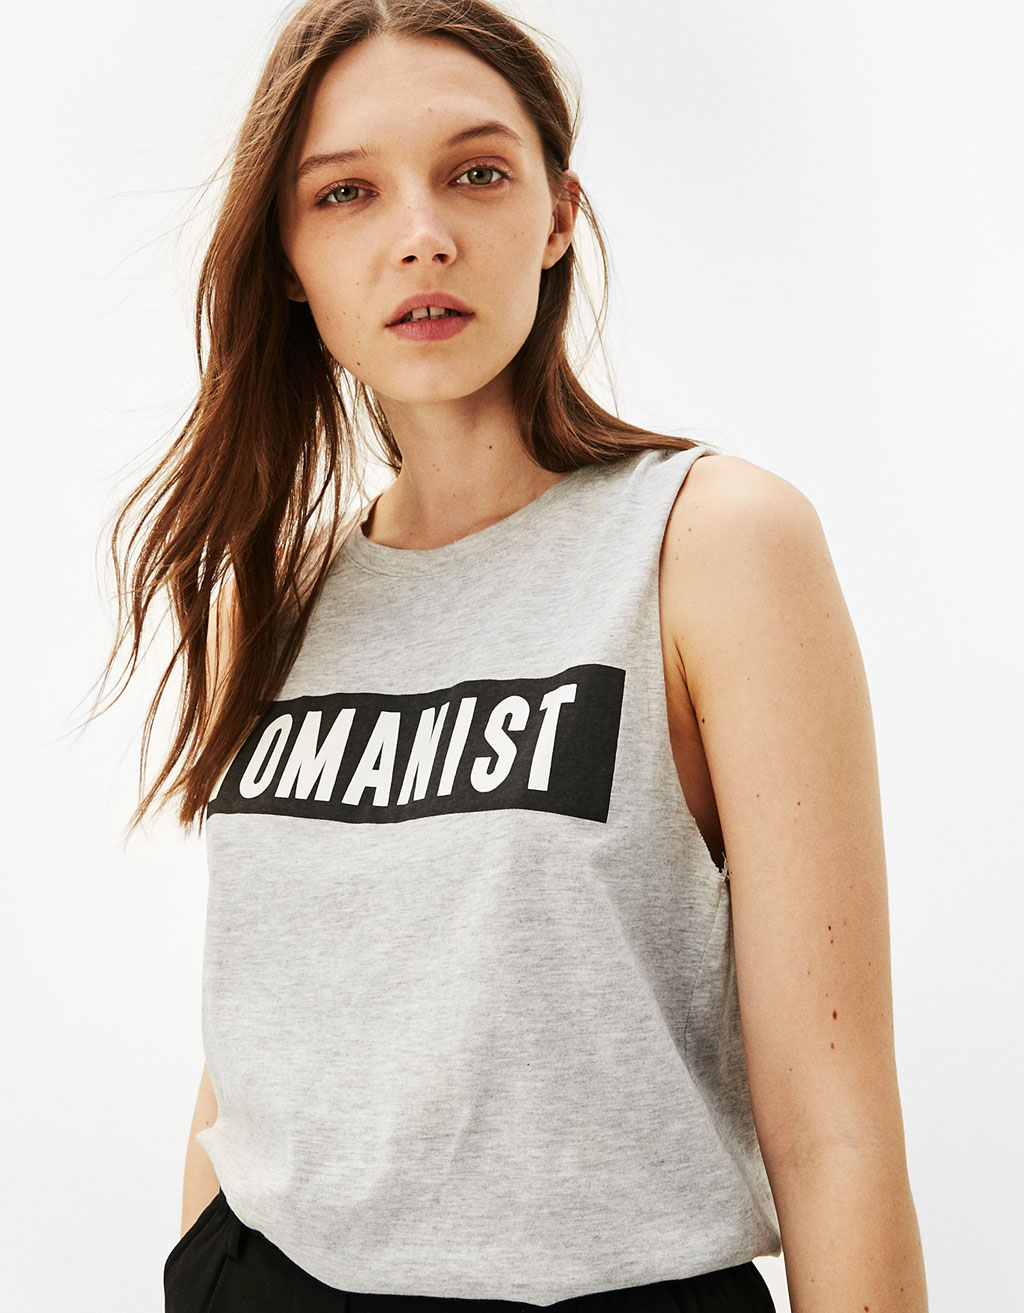 'Womanist/Boyfriend' tank top